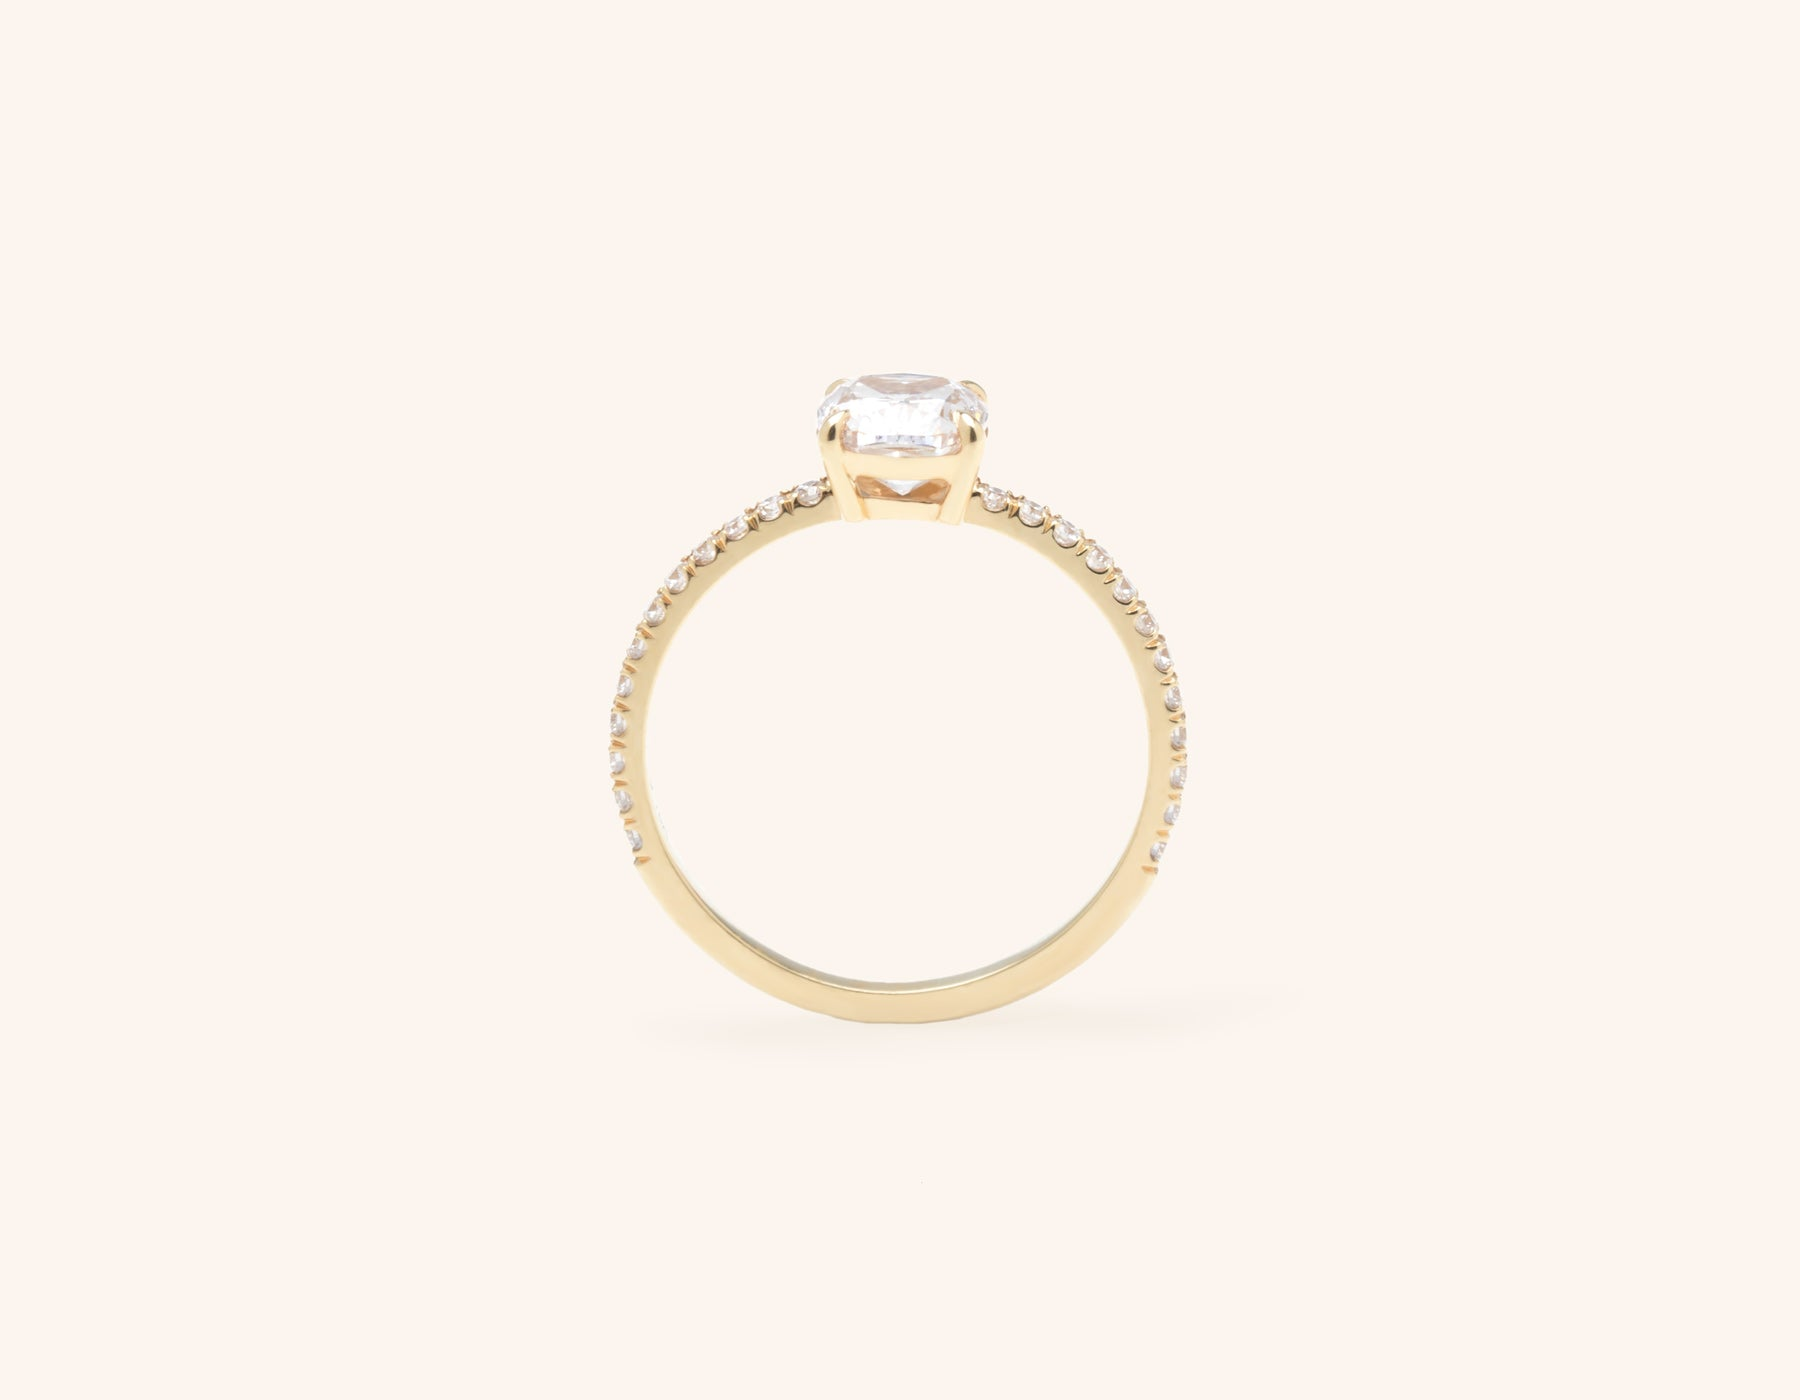 Vrai and Oro modern classic The Cushion pave diamond engagement ring 18k solid yellow gold sustainable jewelry